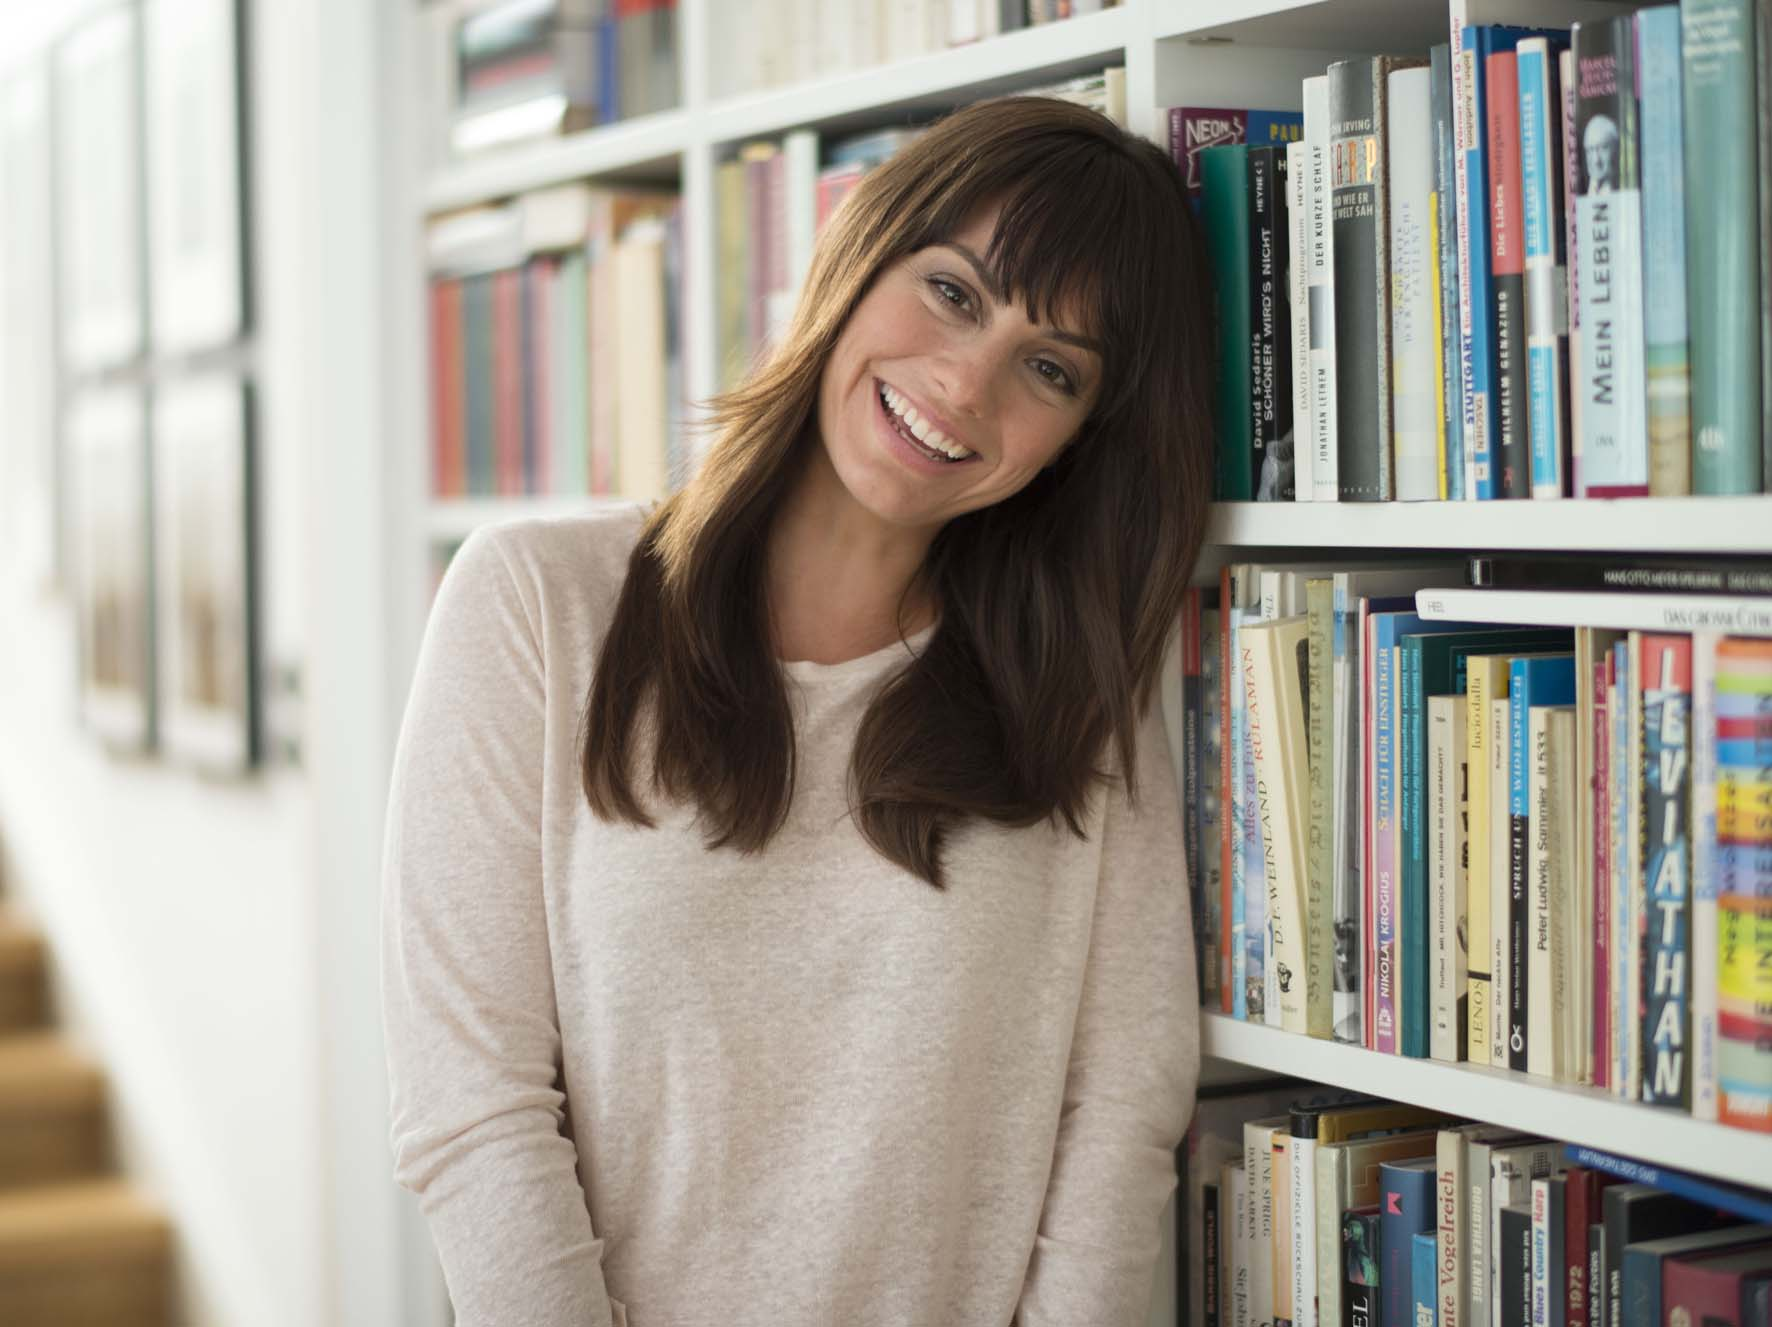 Commercial Model Cora lachend in der Bibliothek